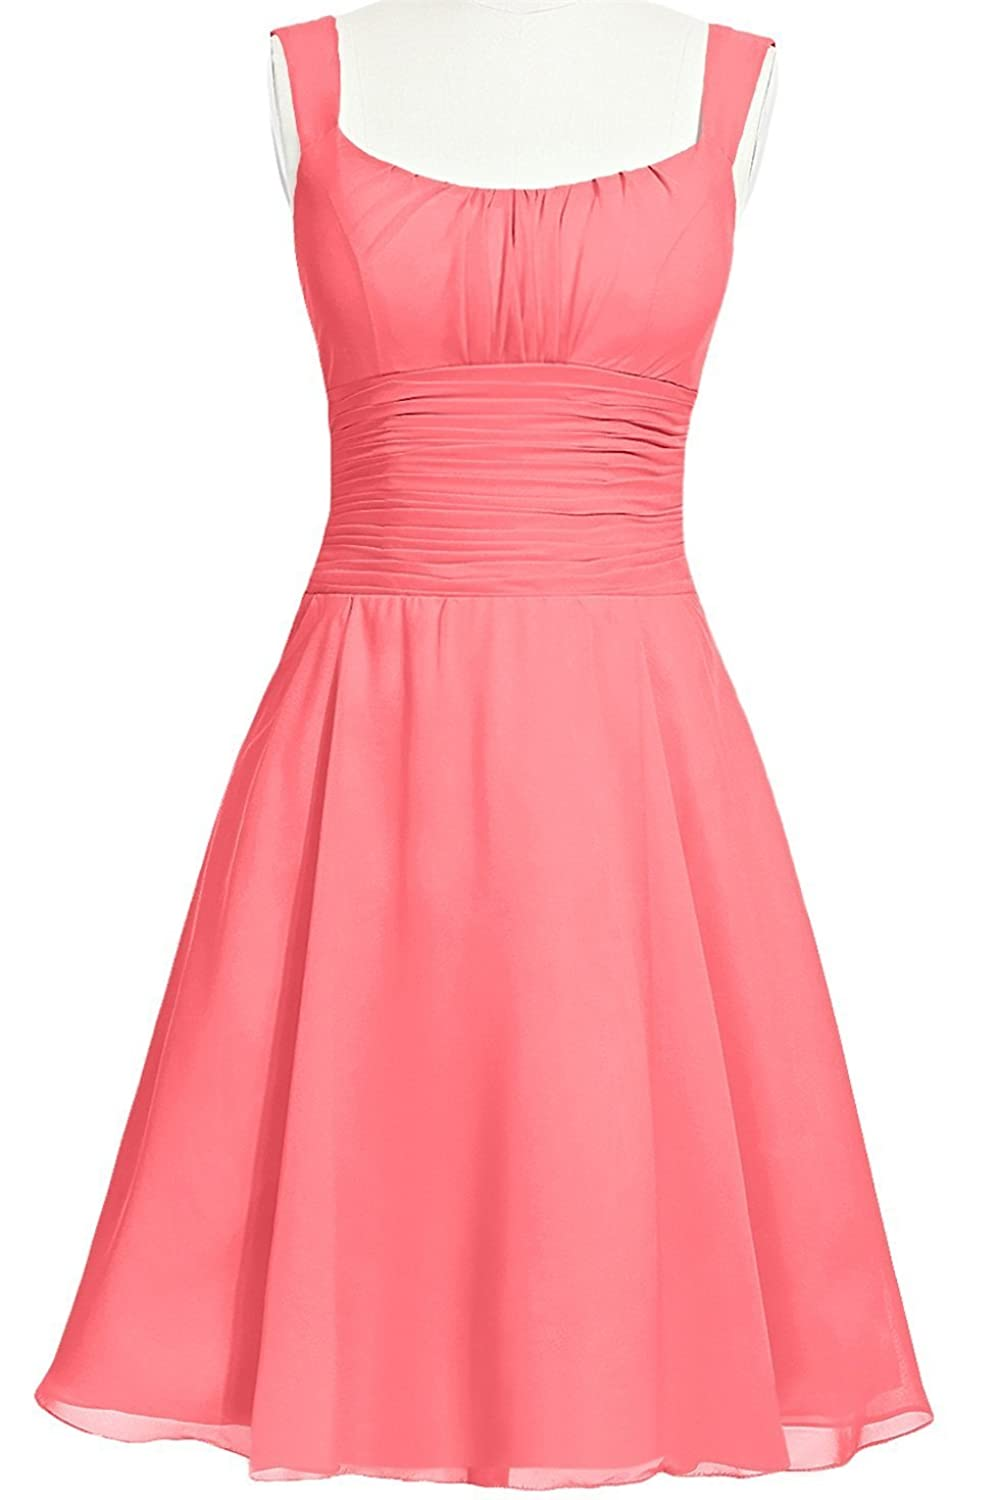 MittyDressesWomens Evening Homecoming Prom Party Cocktail Dress Size 10 US Watermelon